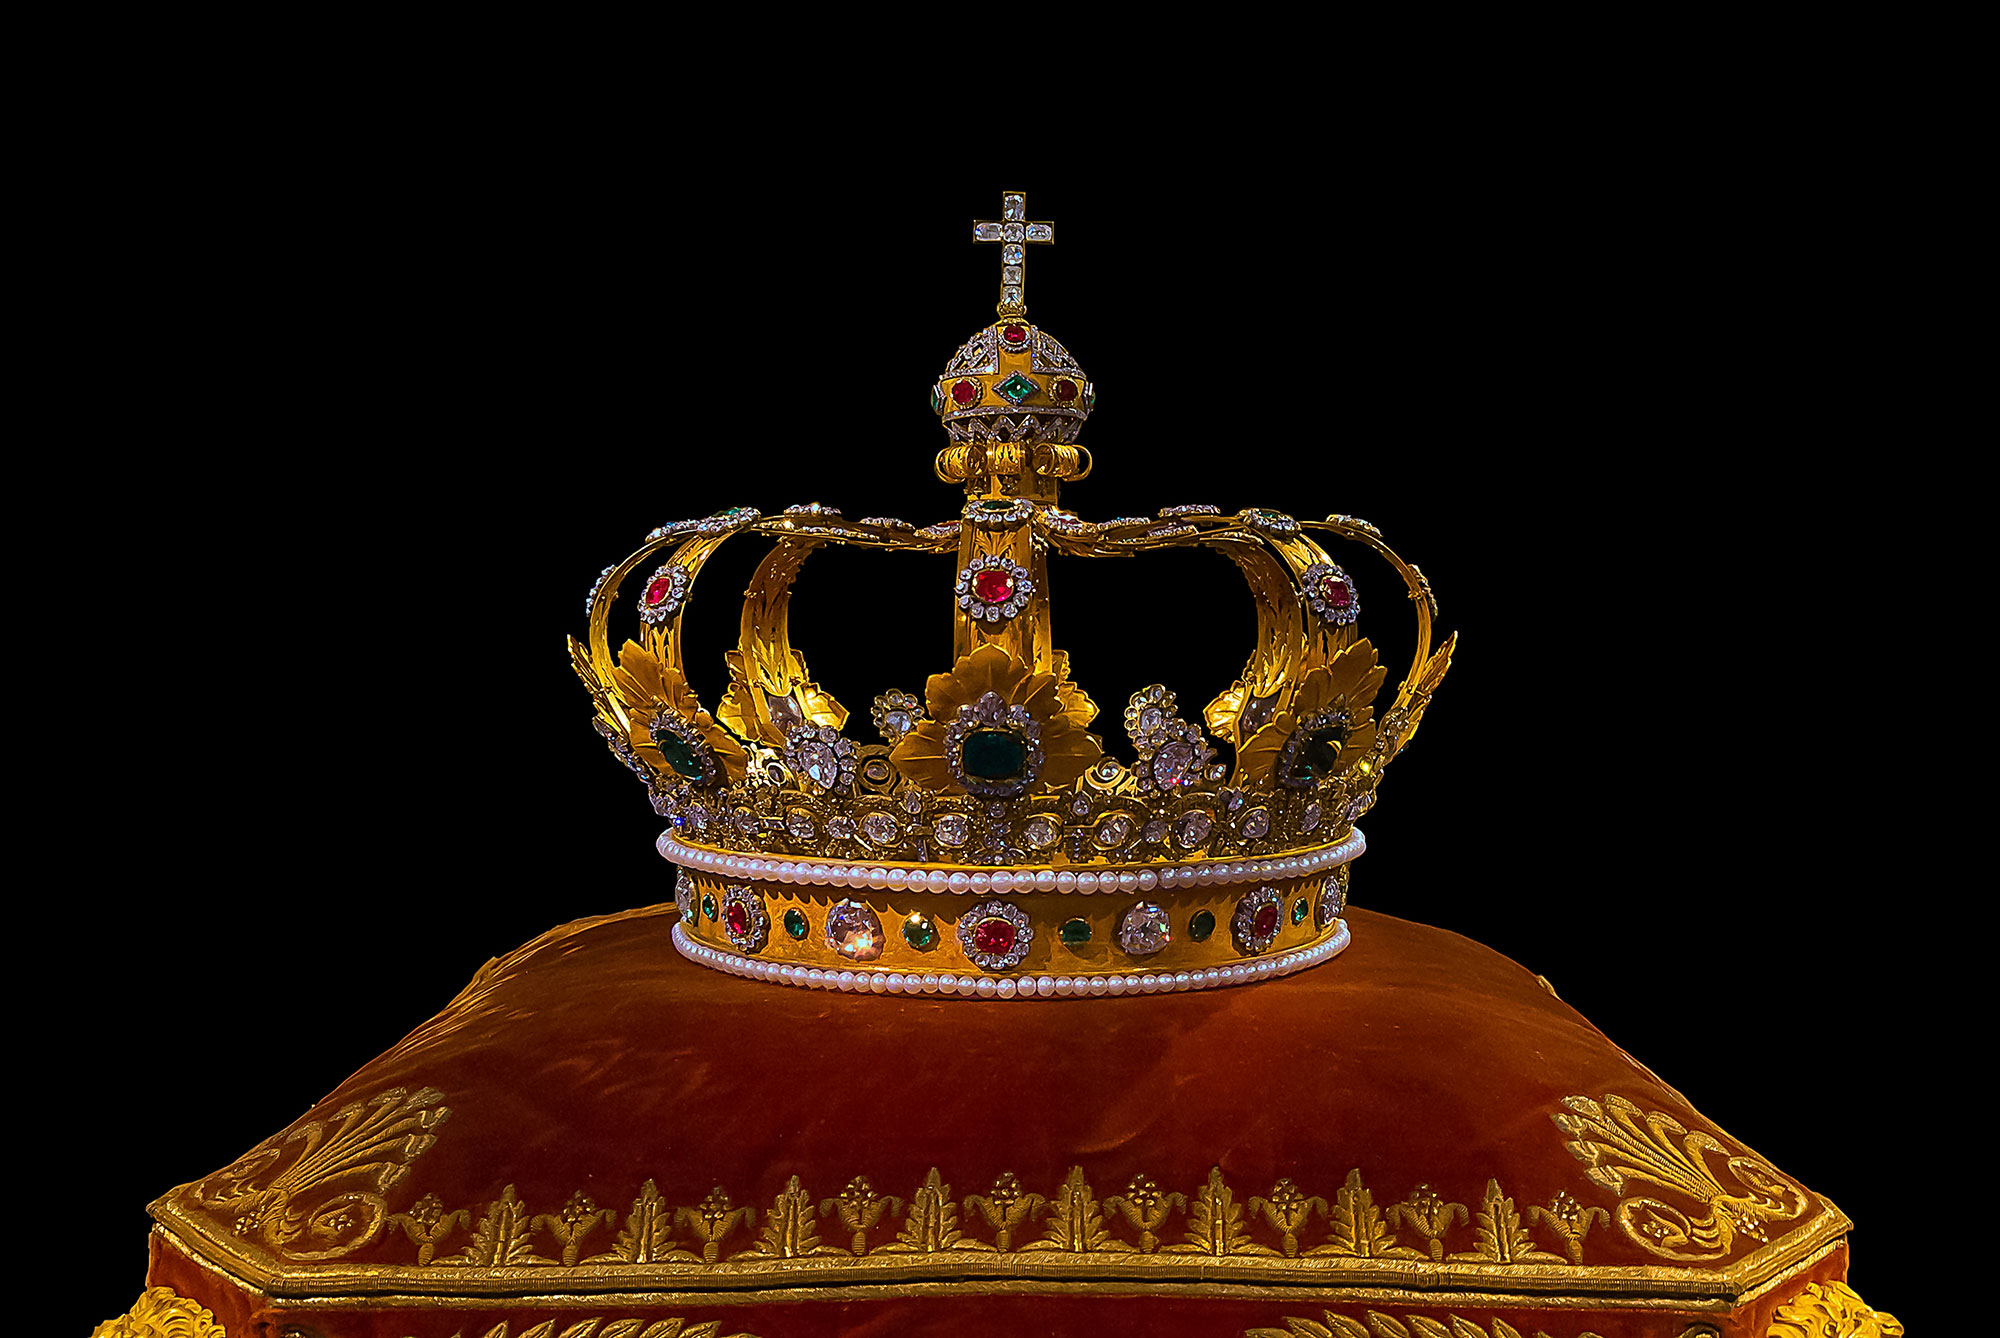 Crown of the Kings of Bavaria